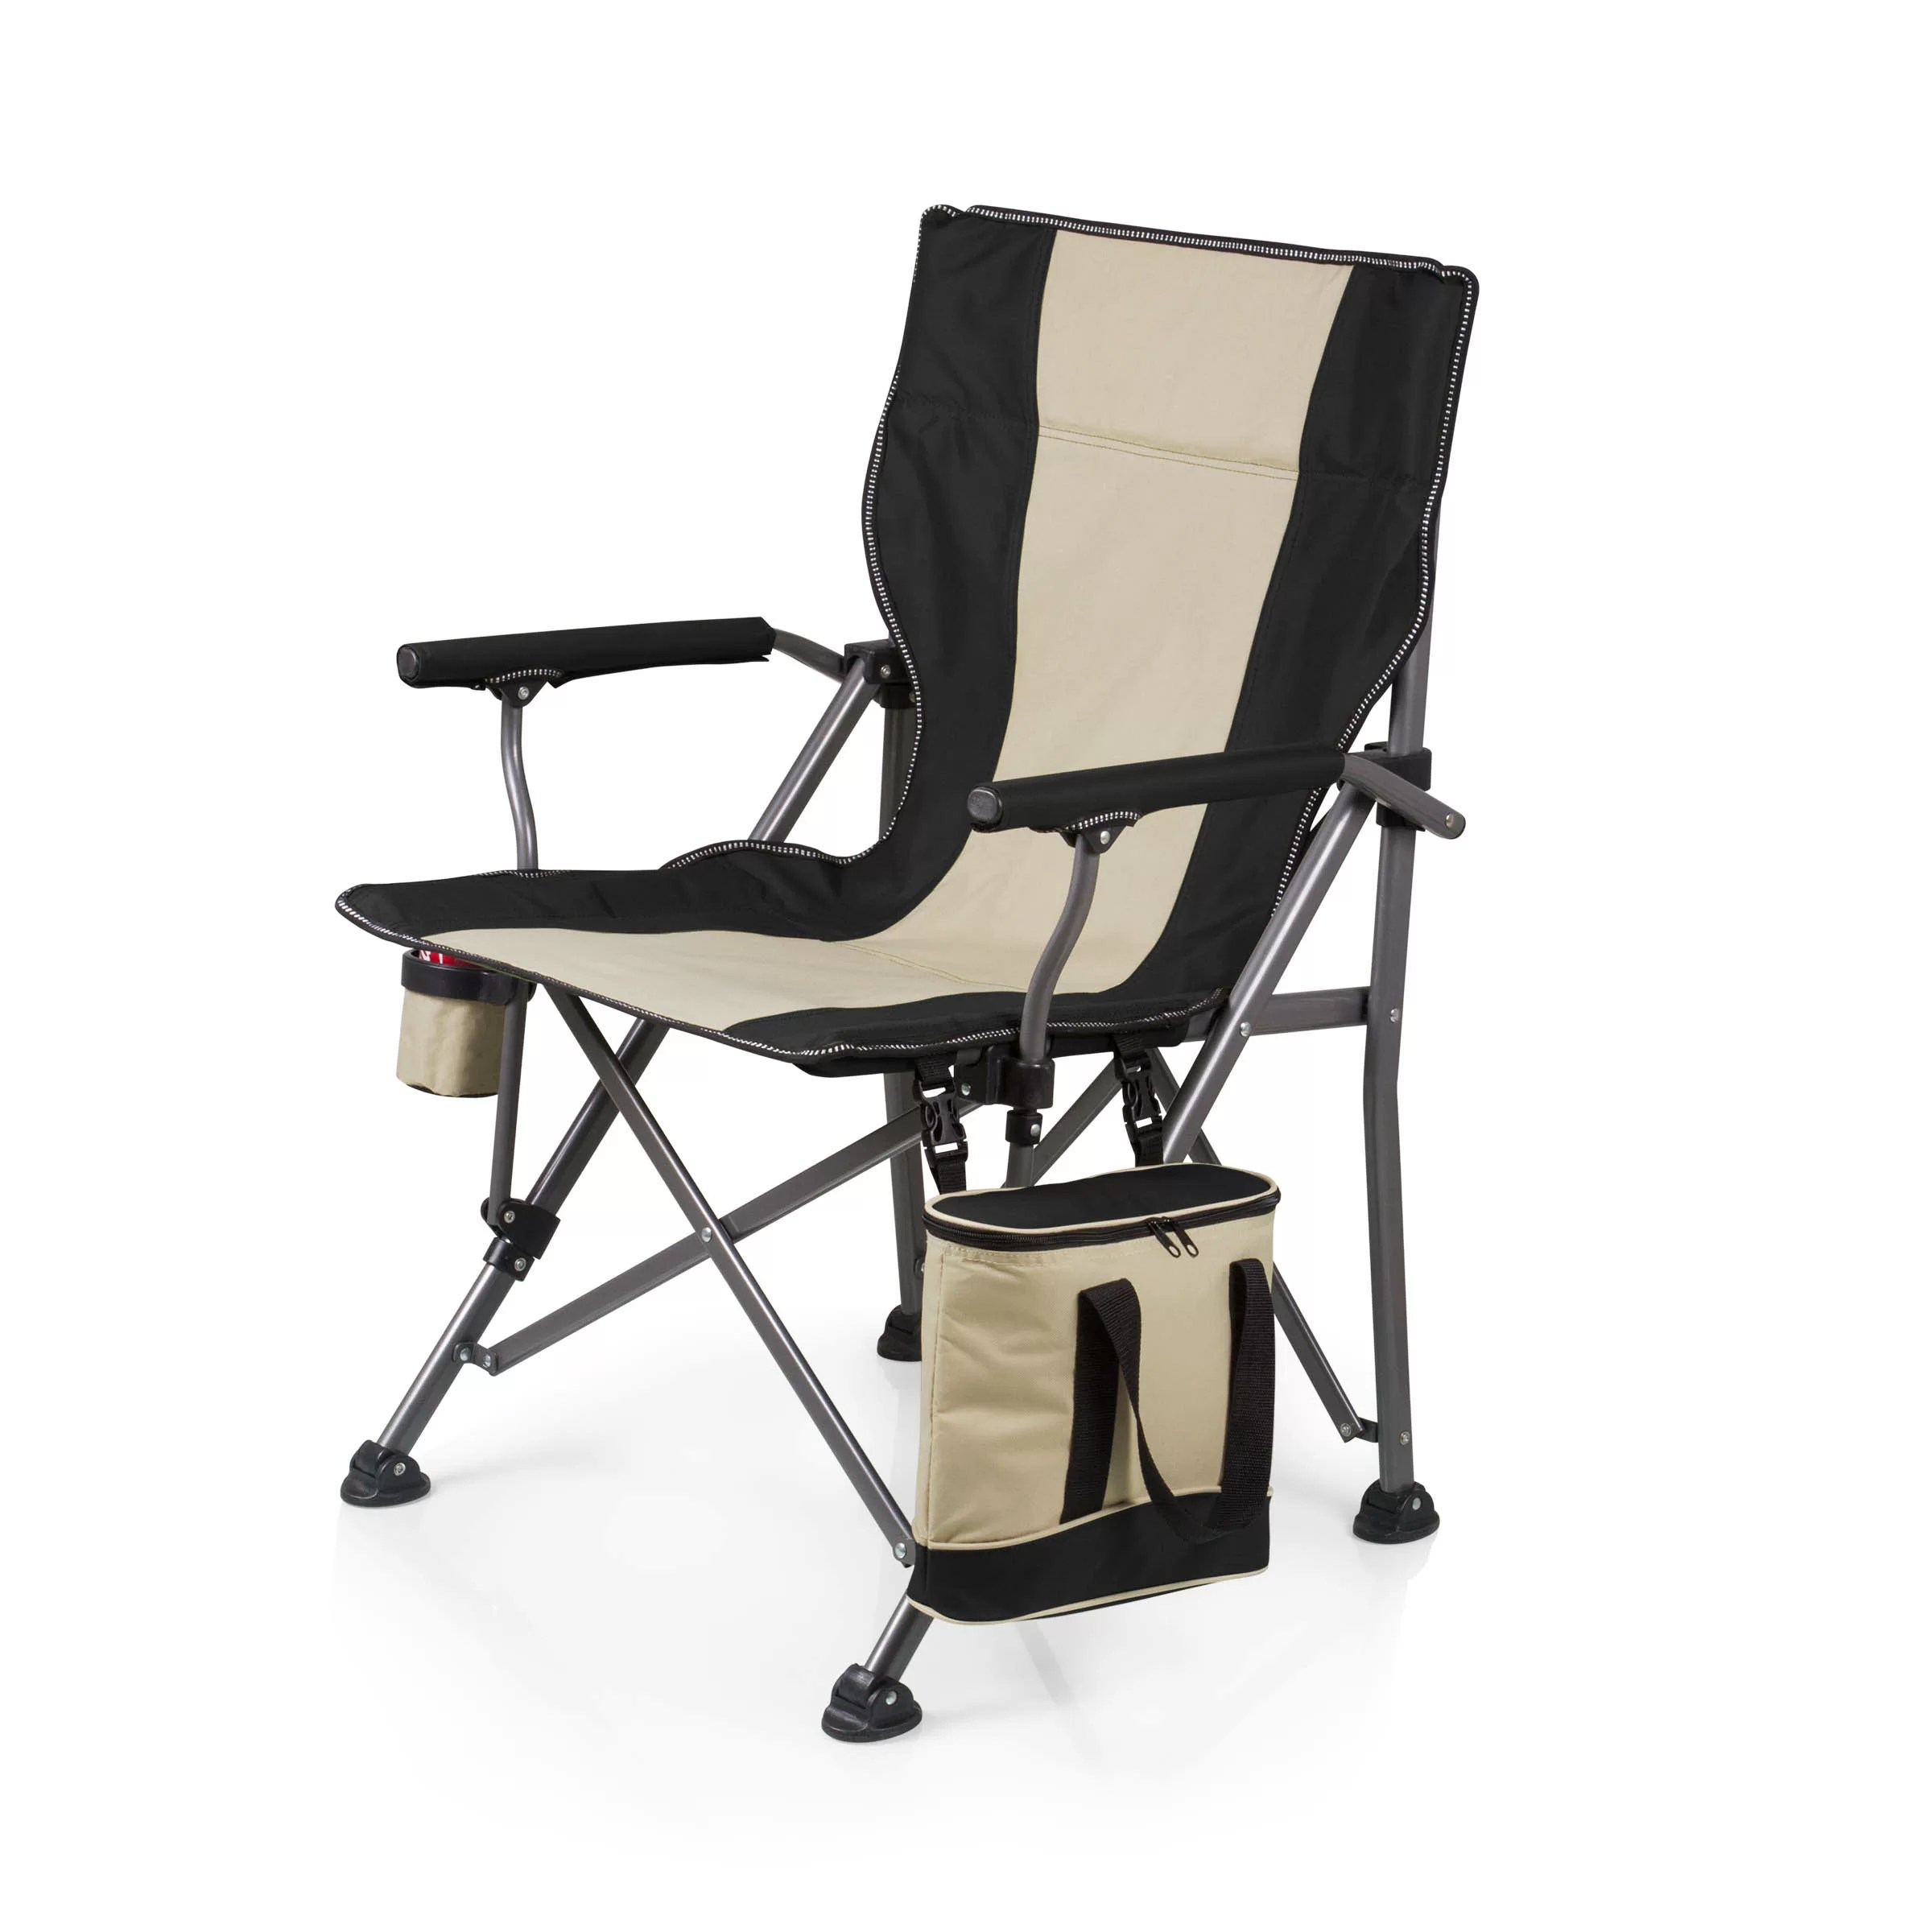 Sturdy Camping Chair Gorge Outlander Folding Camping Chair